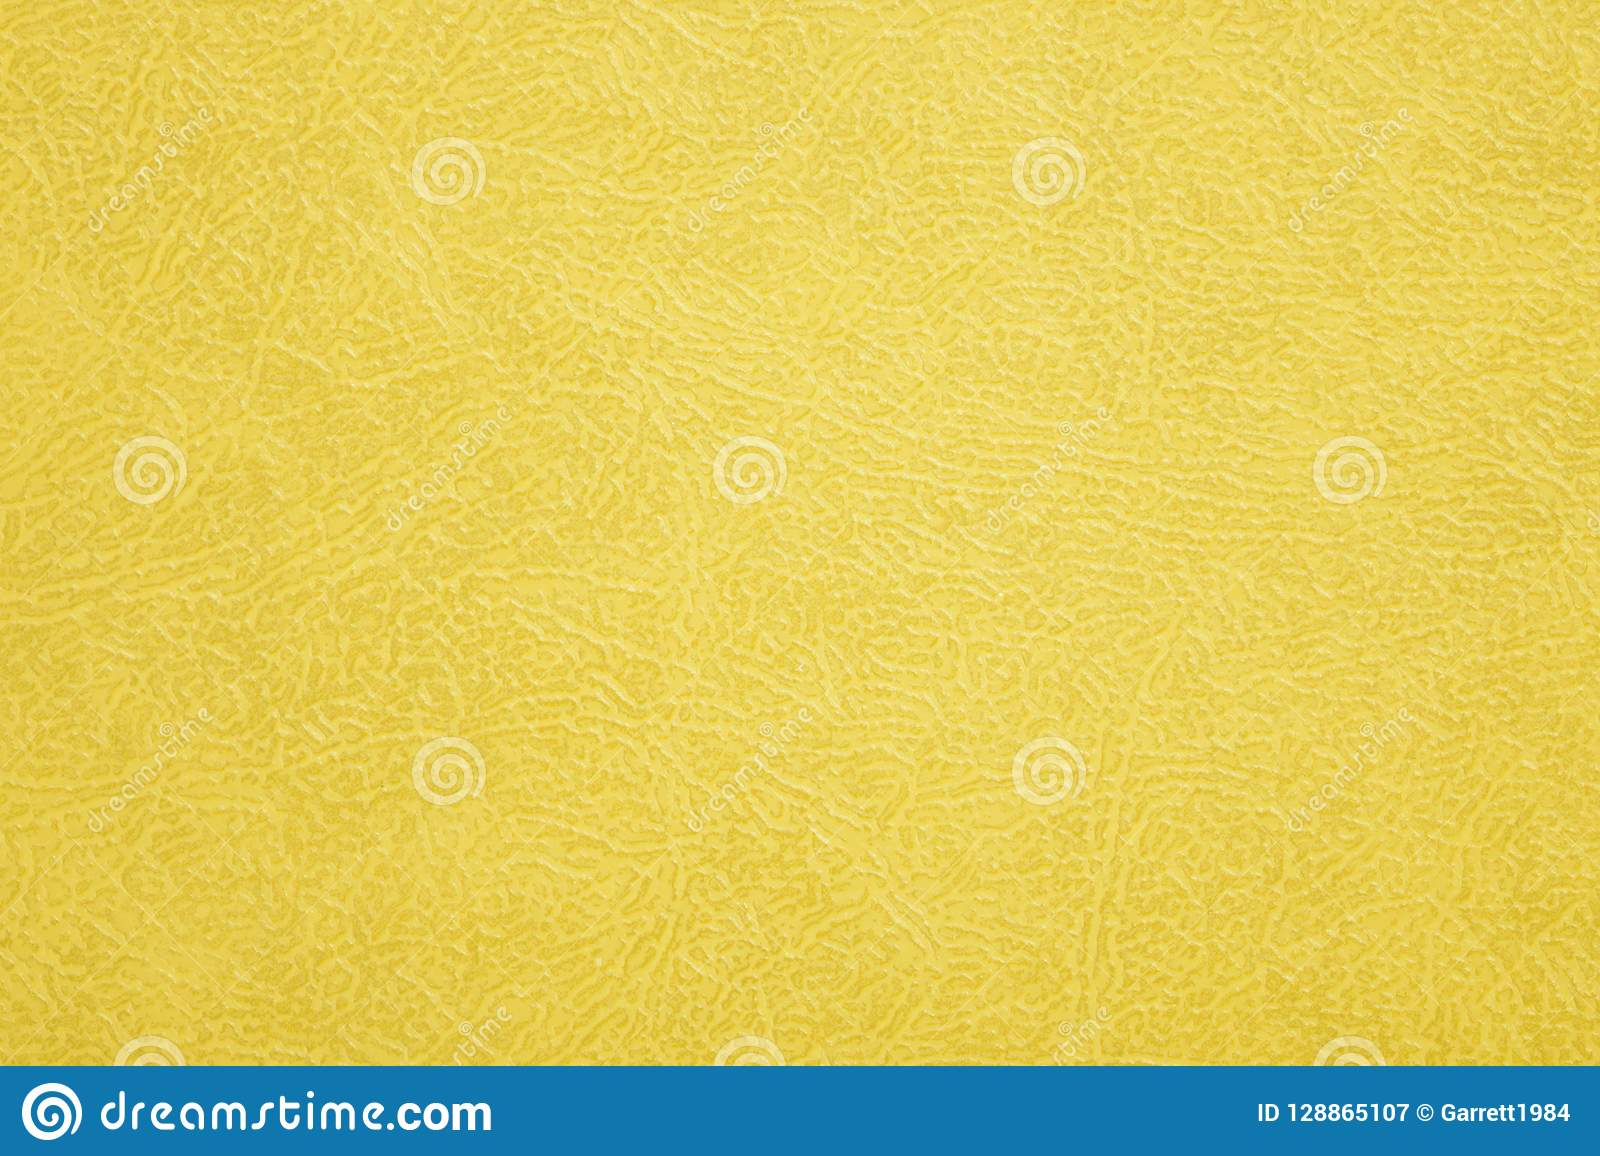 Golden textured leather or foil texture background. Abstract foil texture for artwork